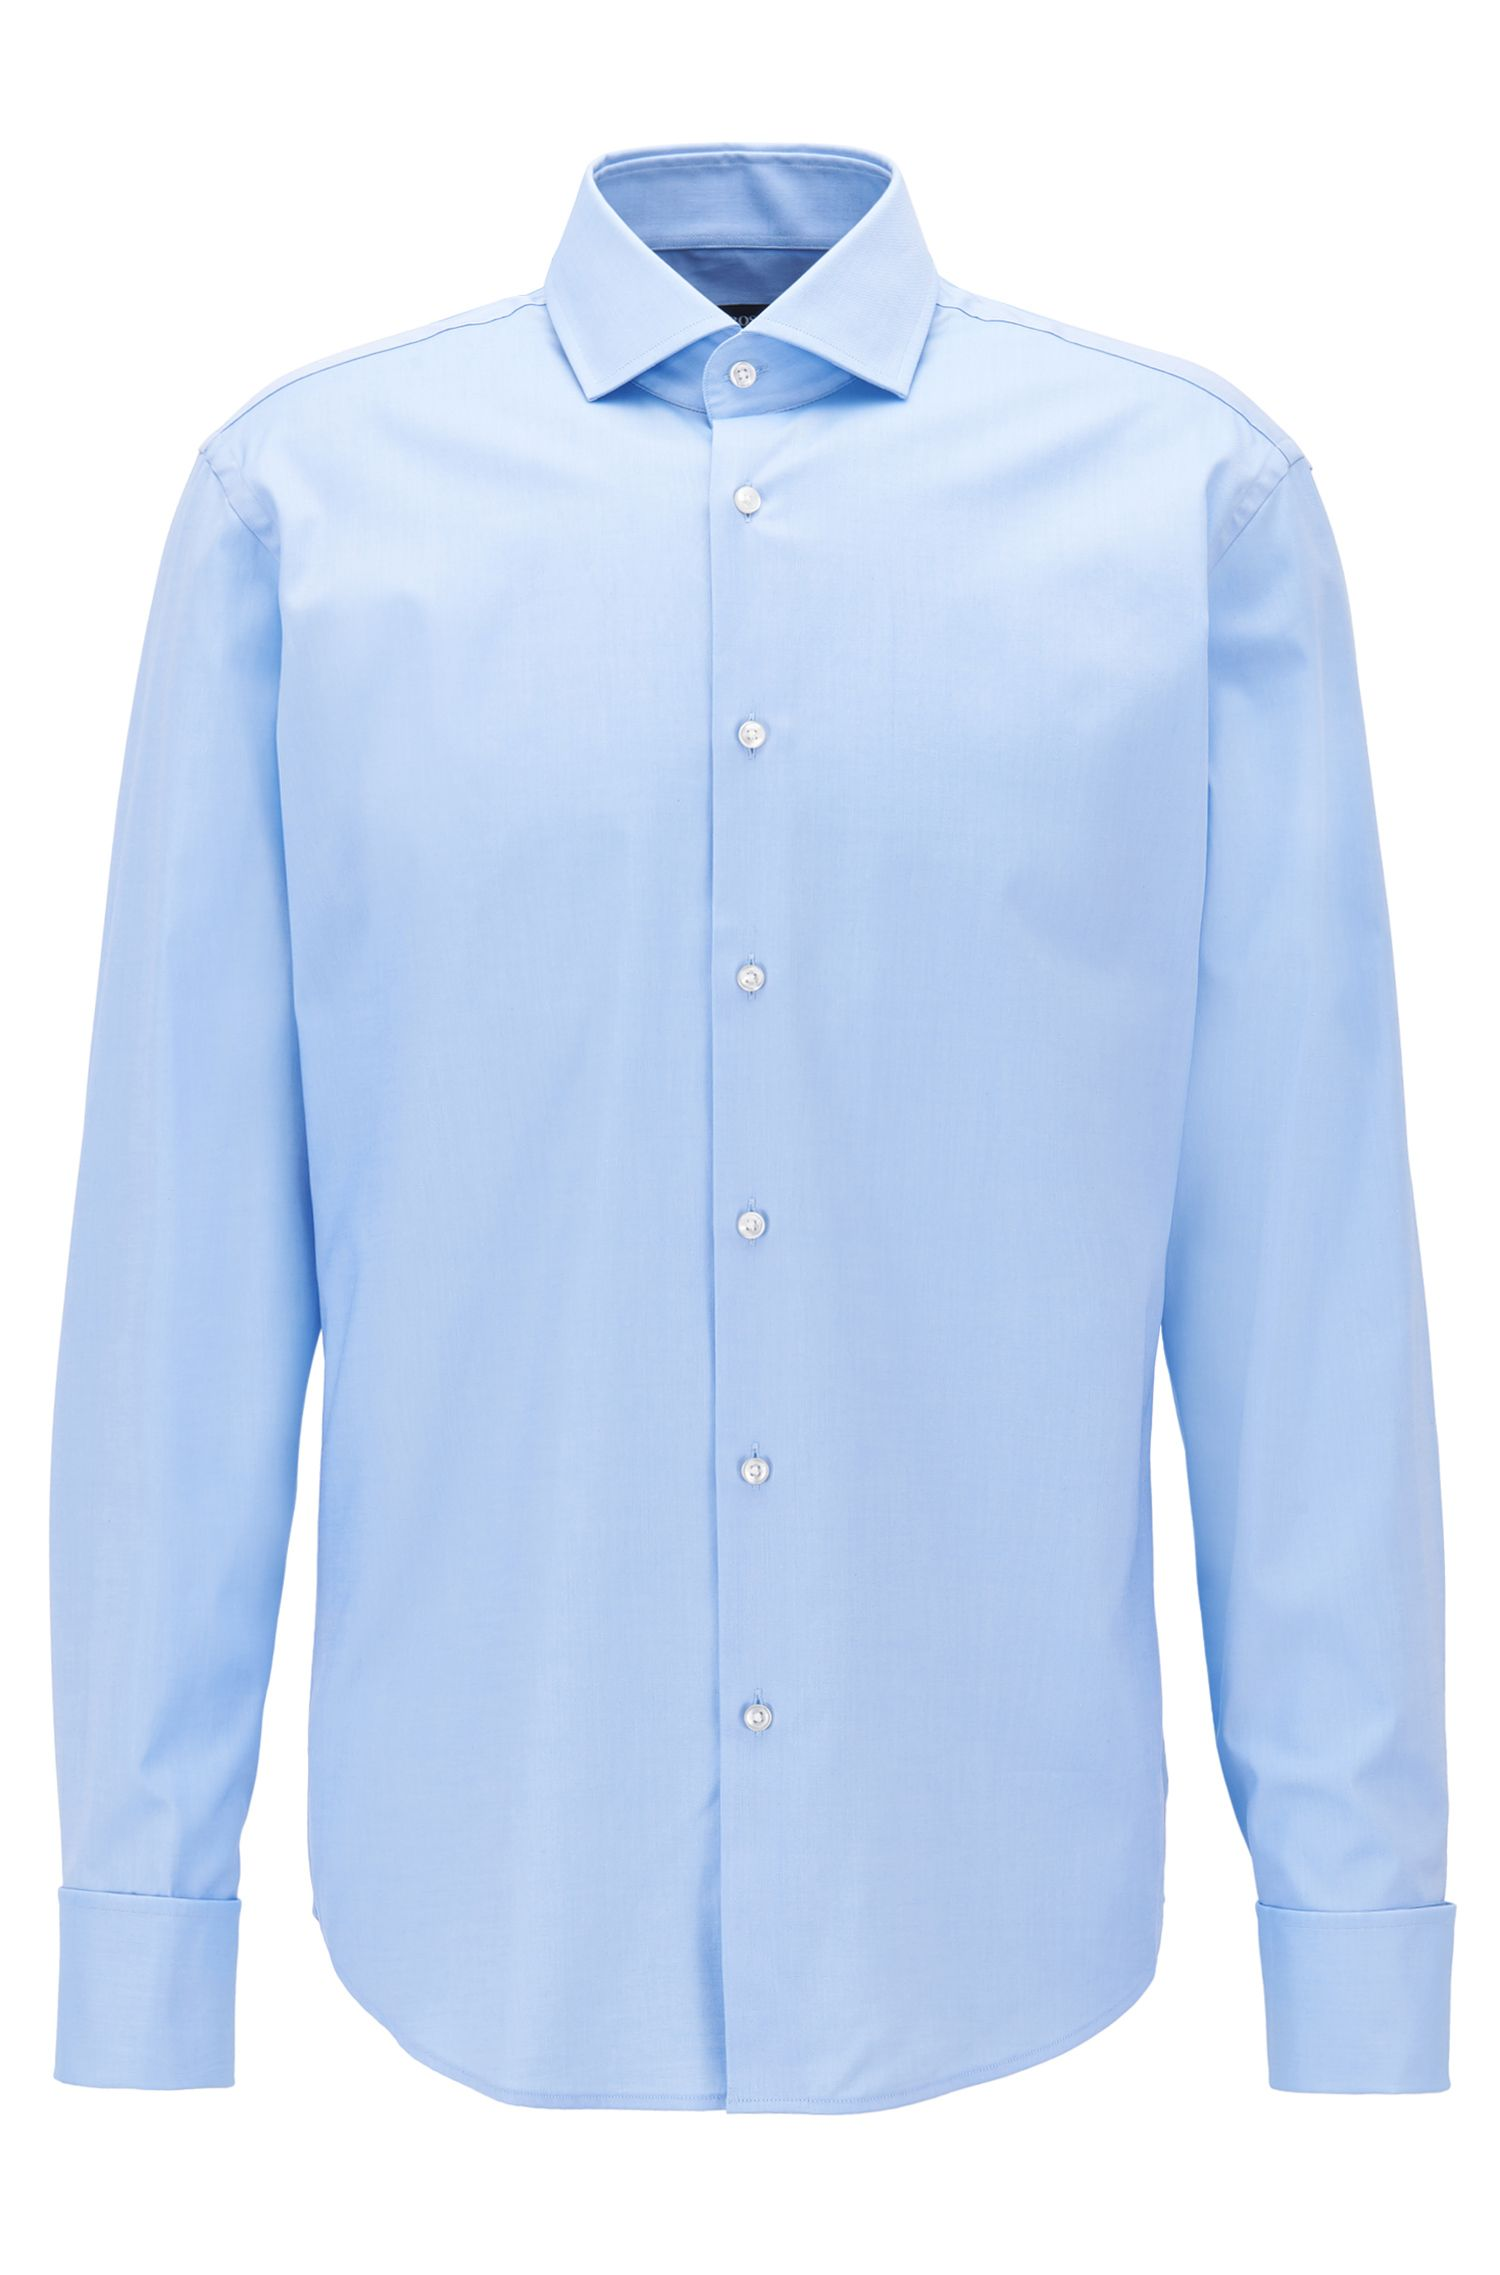 Cotton-twill shirt in a regular fit